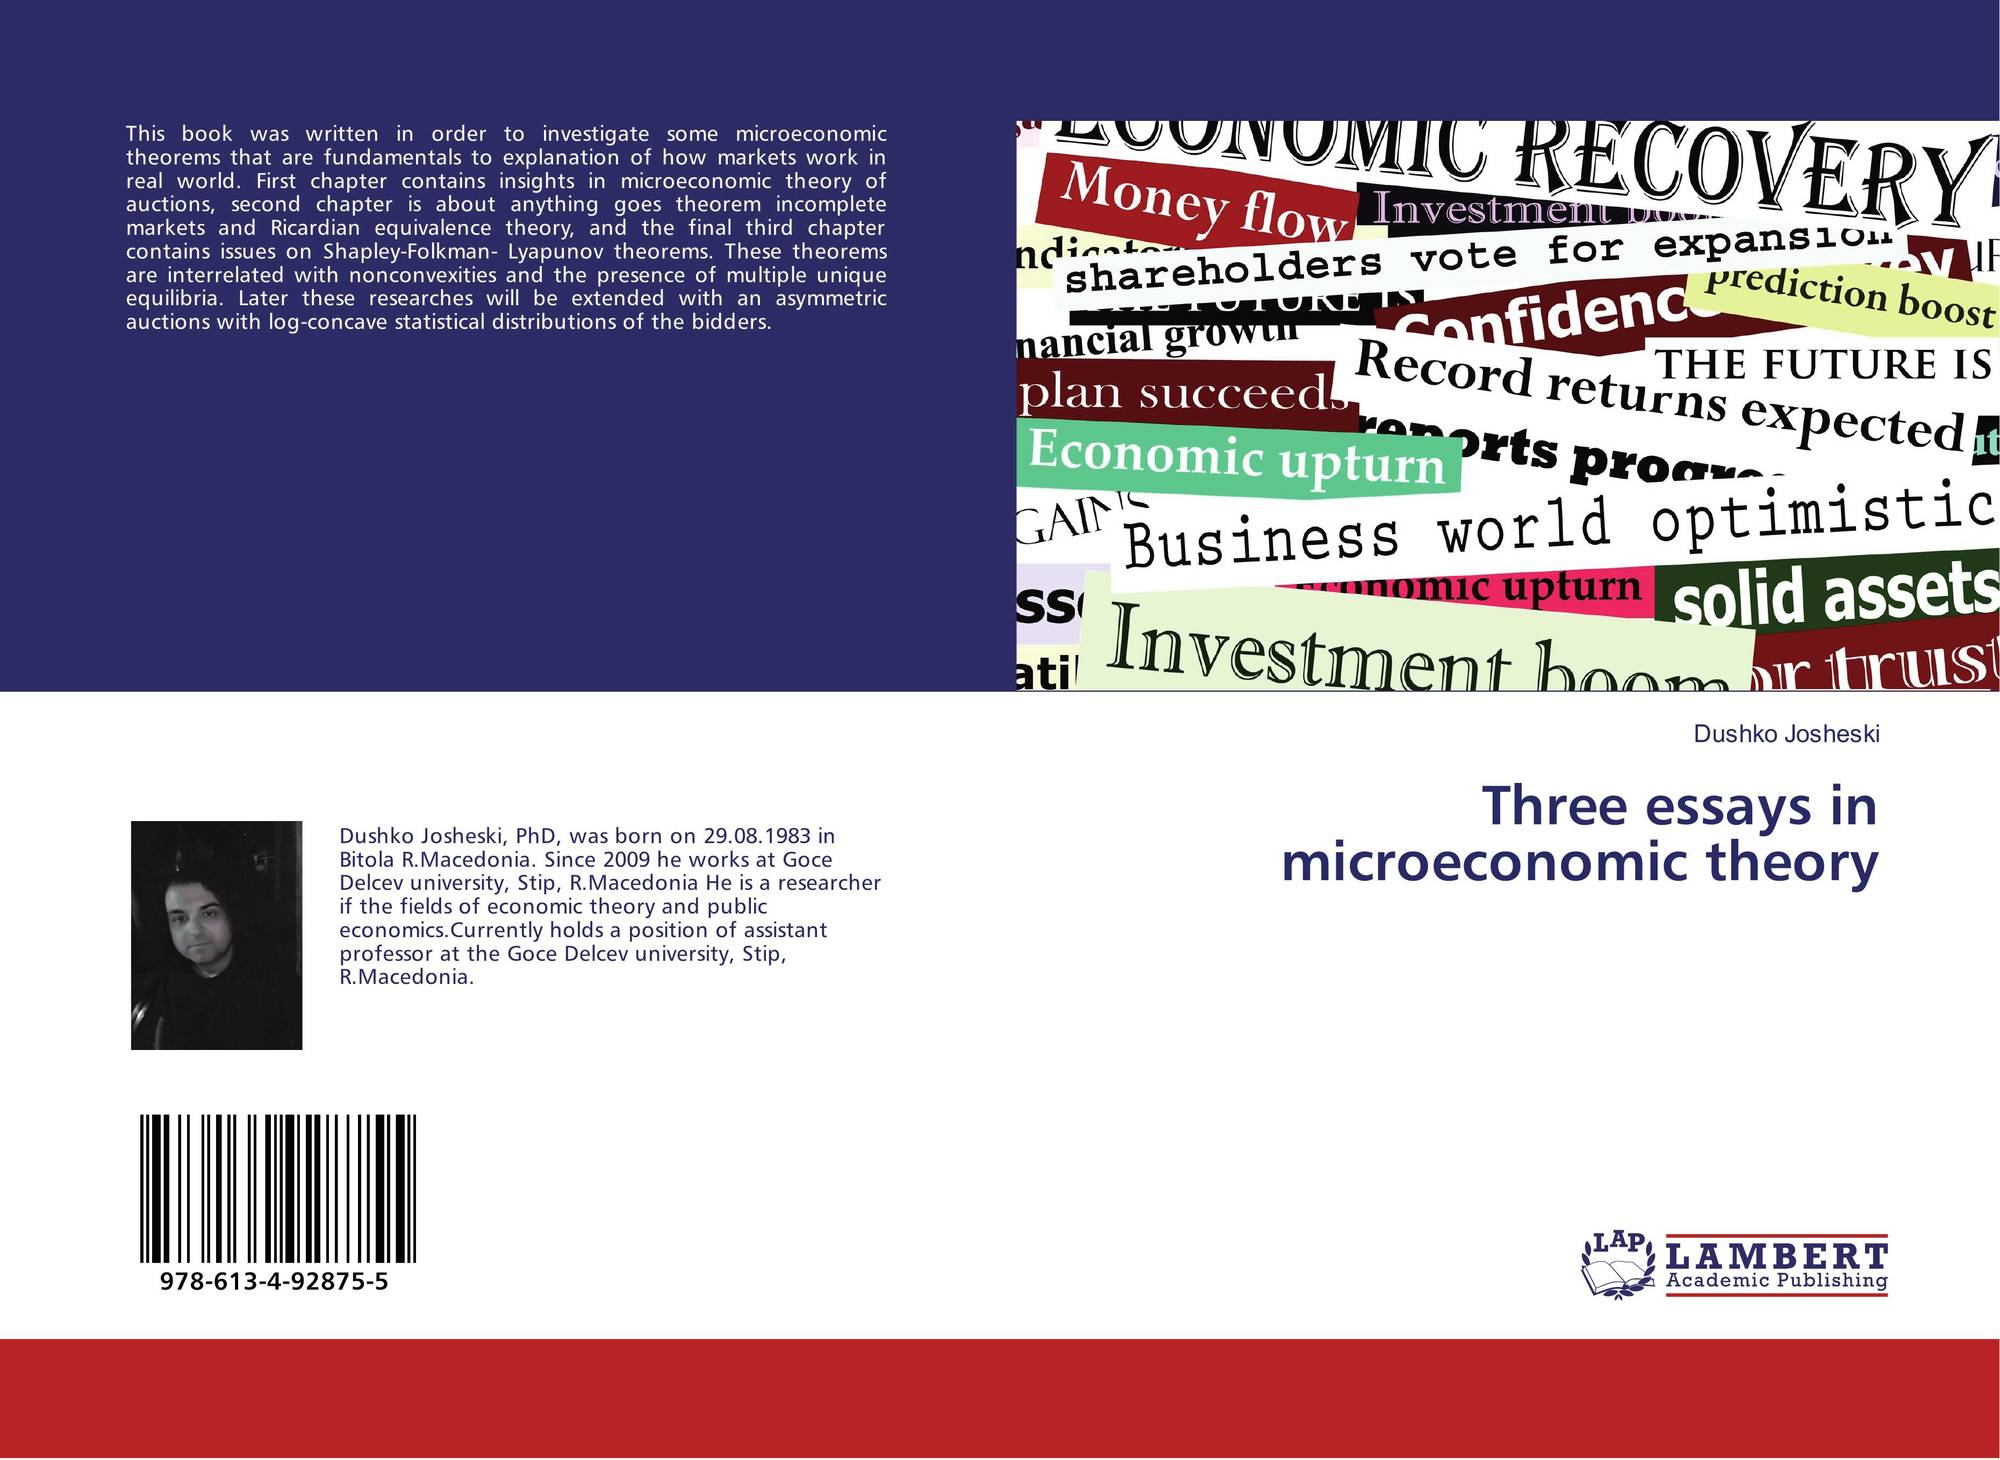 microeconomic theory essay Pack 2 - microeconomics  theory of firm - essay question 1 (a) explain why  only normal profit may be earned in the long run in perfect competition.